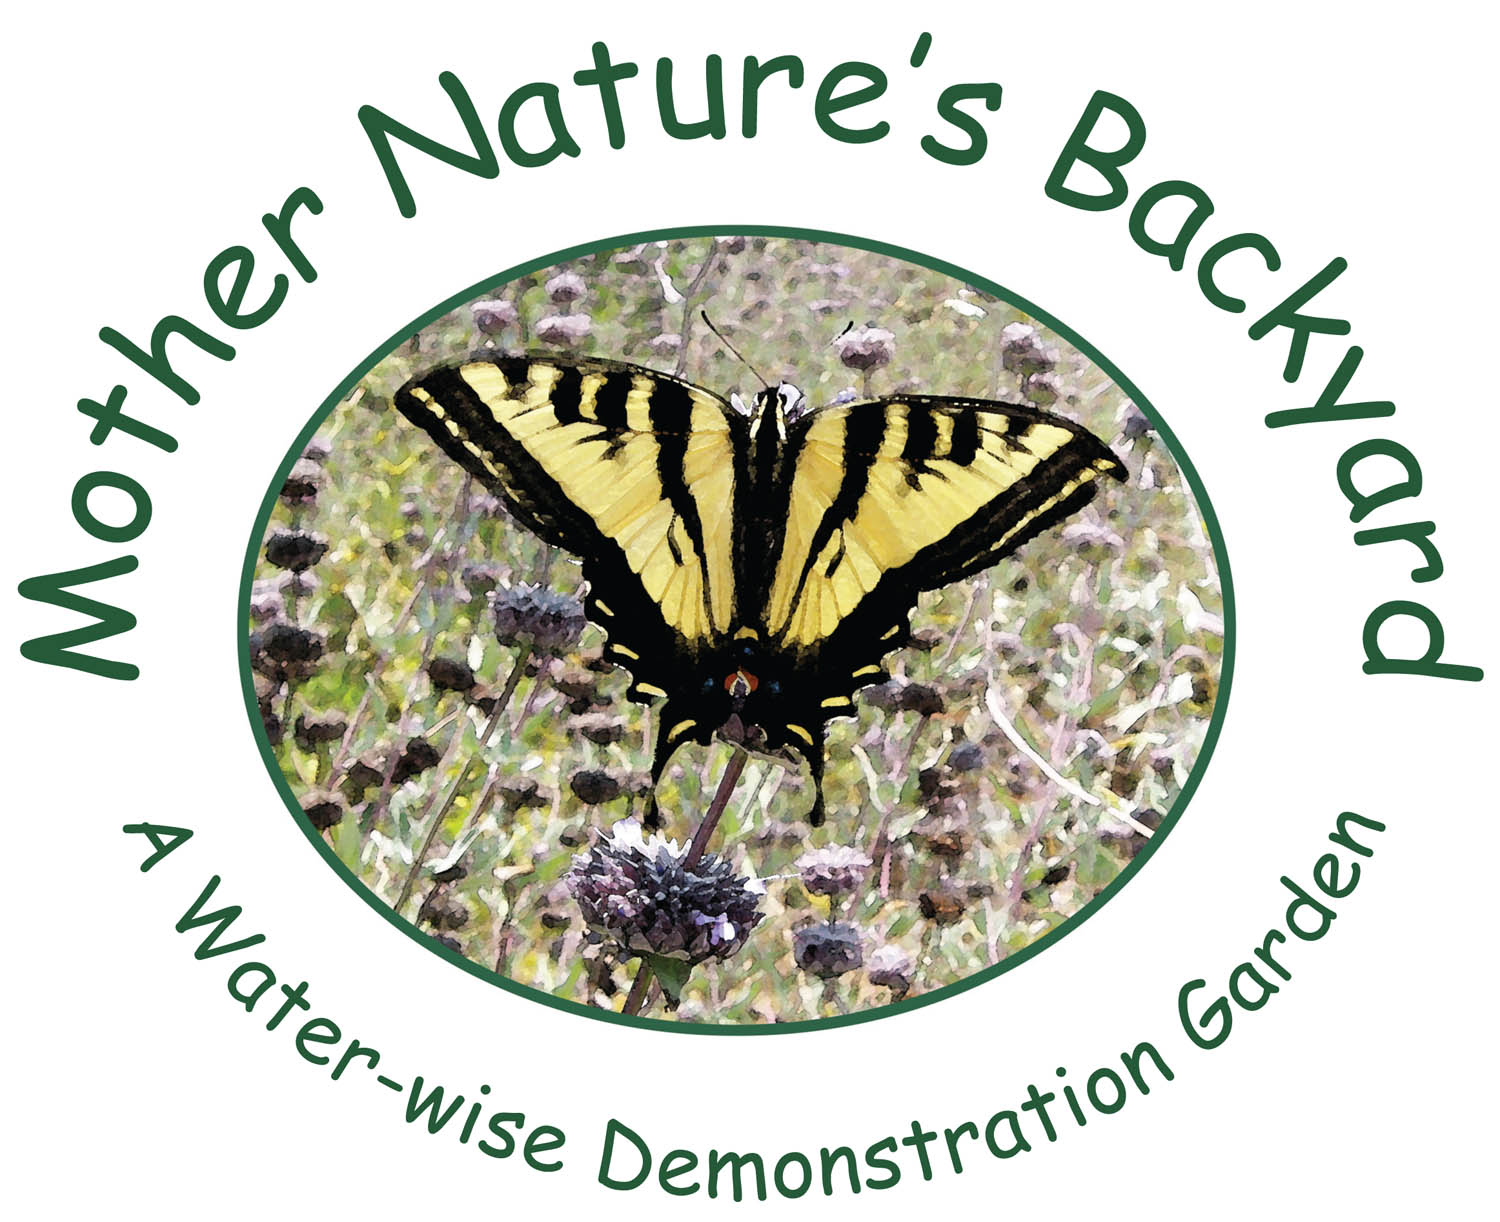 Mother Nature's Backyard logo - link to the website opens in new window